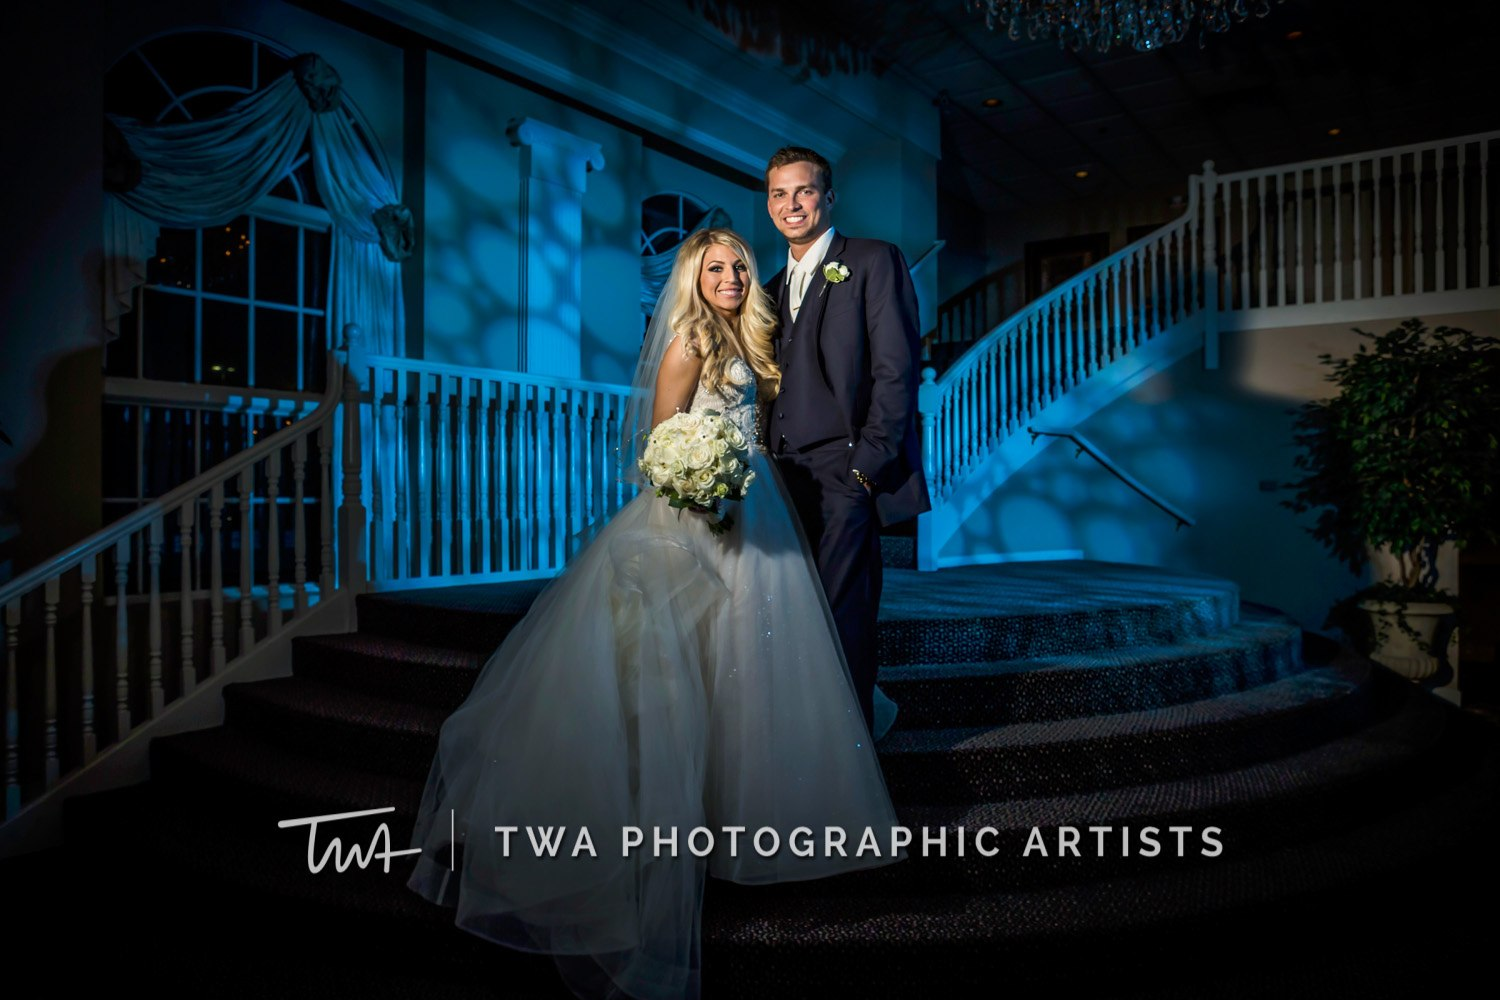 Chicago-Wedding-Photographer-TWA-Photographic-Artists-Abbington-Banquets_Annoreno_Baird_MiC_SG-0518